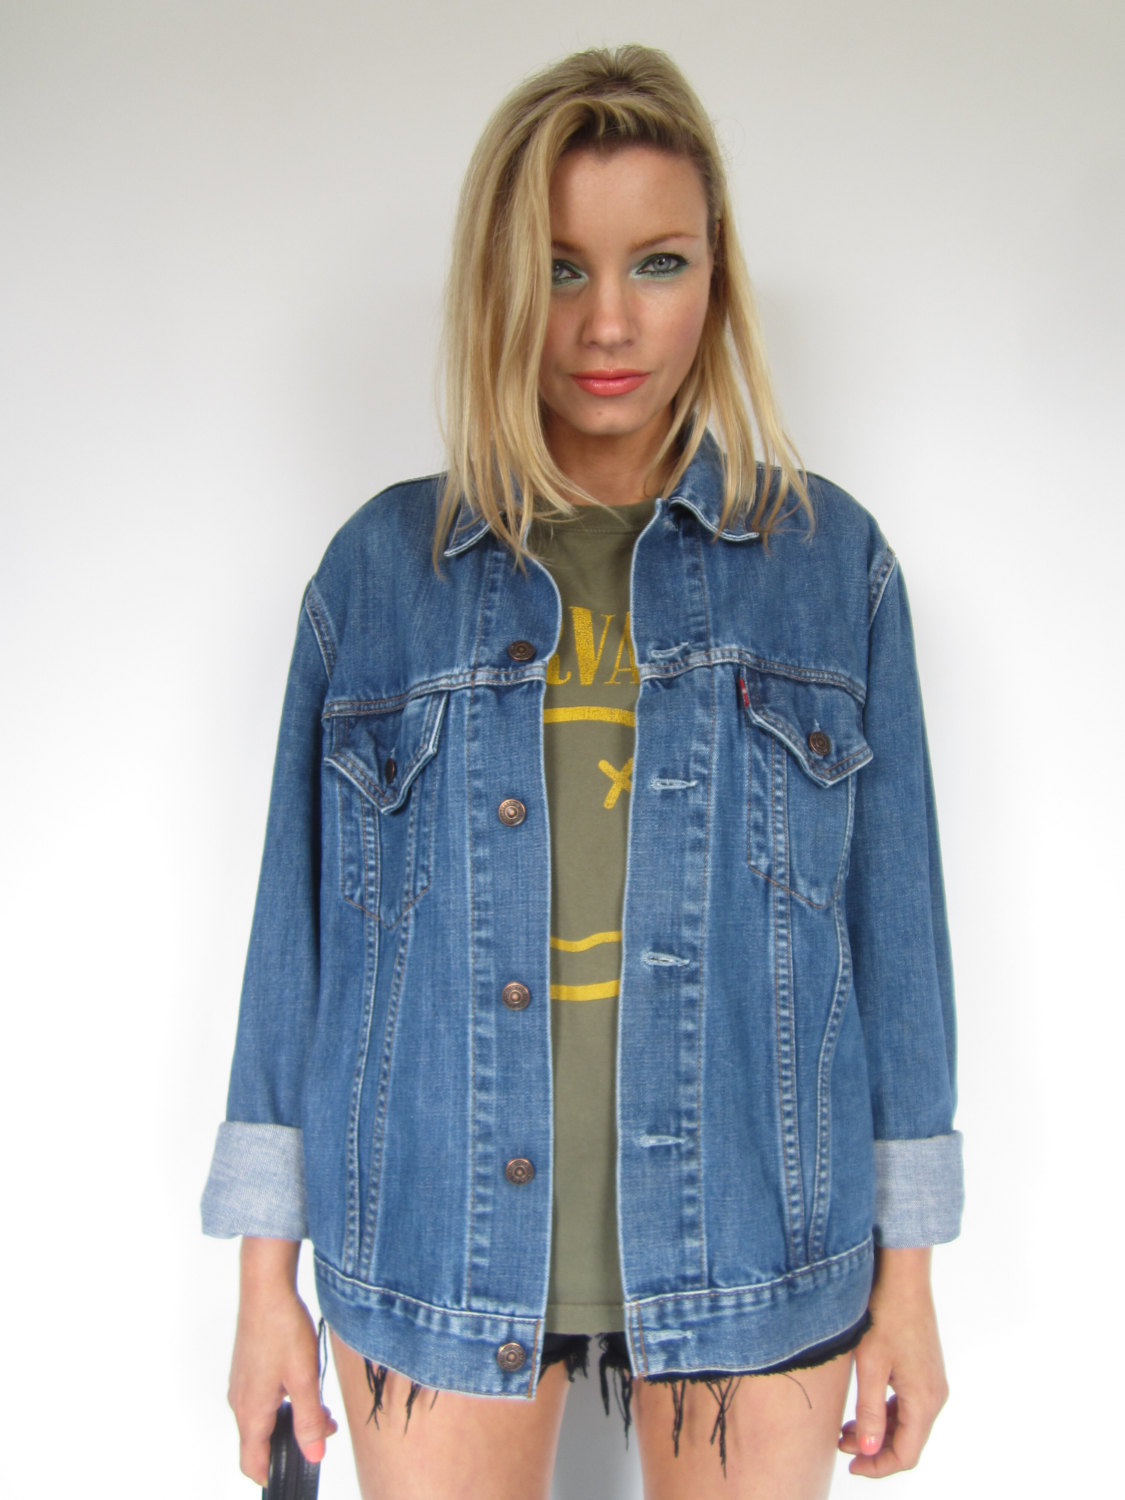 90s Oversized Levi's Blue Wash Denim Jacket Boyfriend Slouchy ...